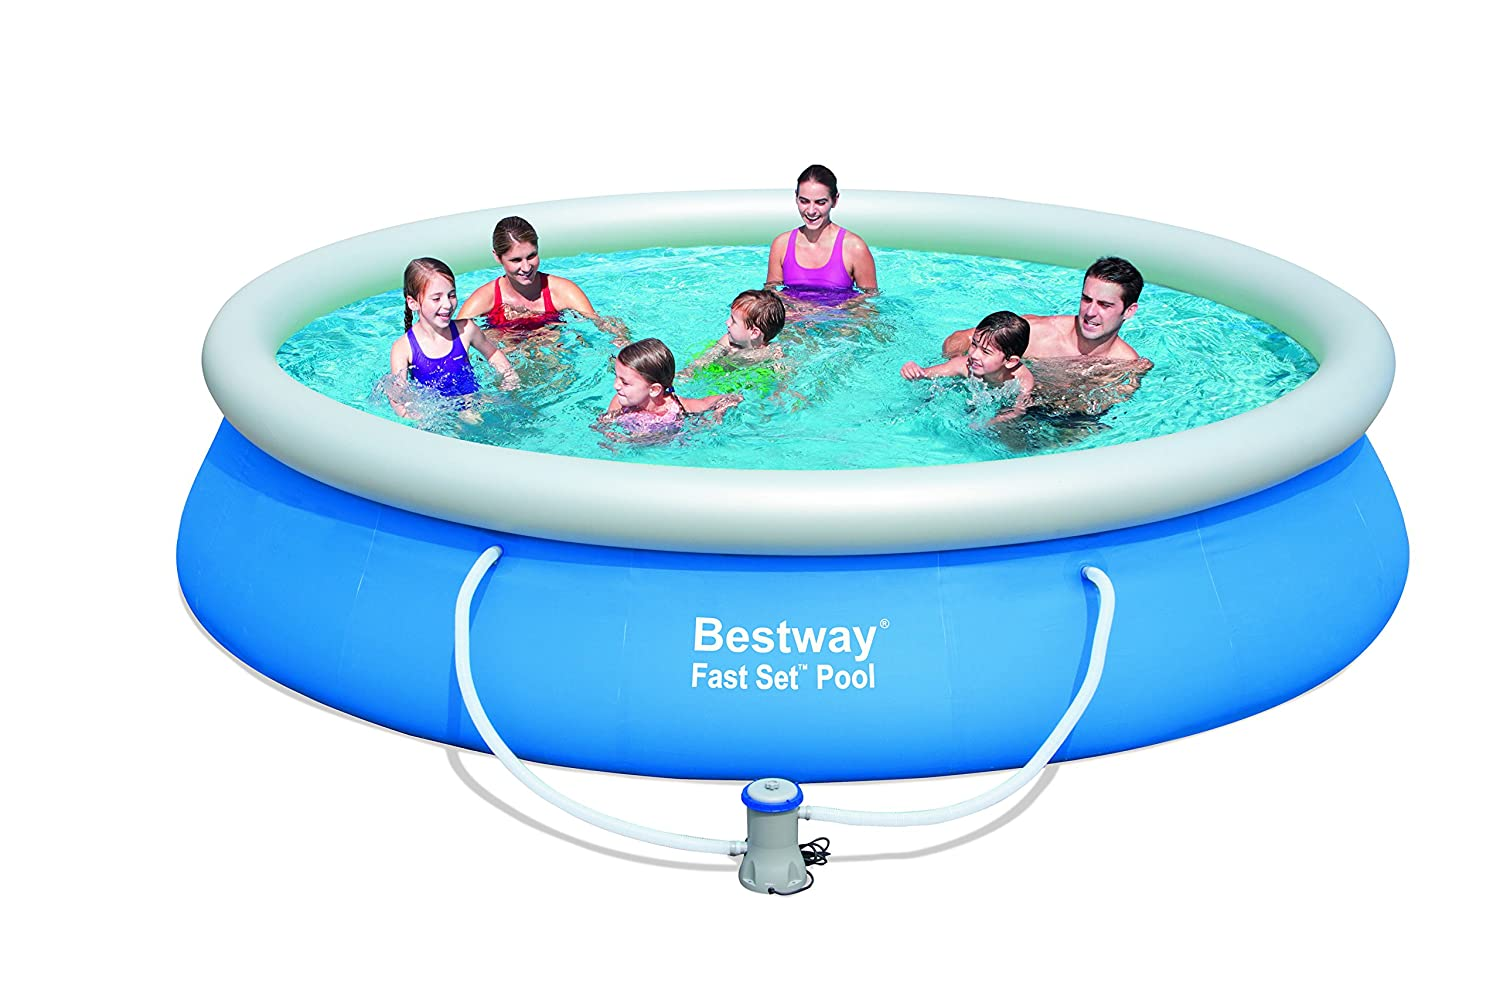 Bestway Fast Set Piscina, 427x91 cm: Amazon.es: Jardín